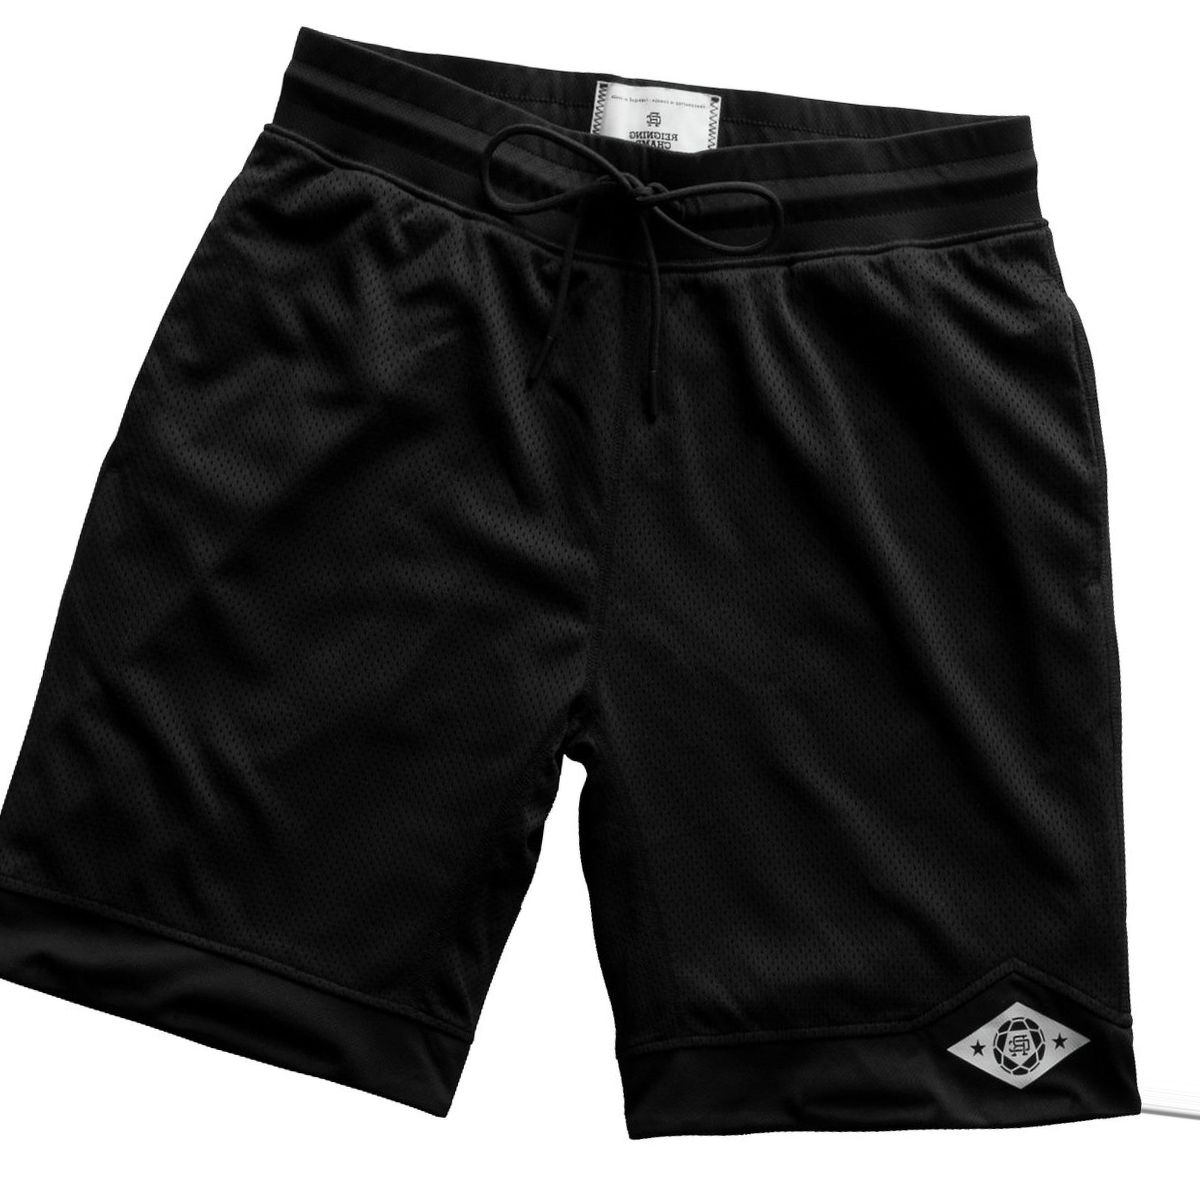 Reigning Champ Street Soccer Short - Men's